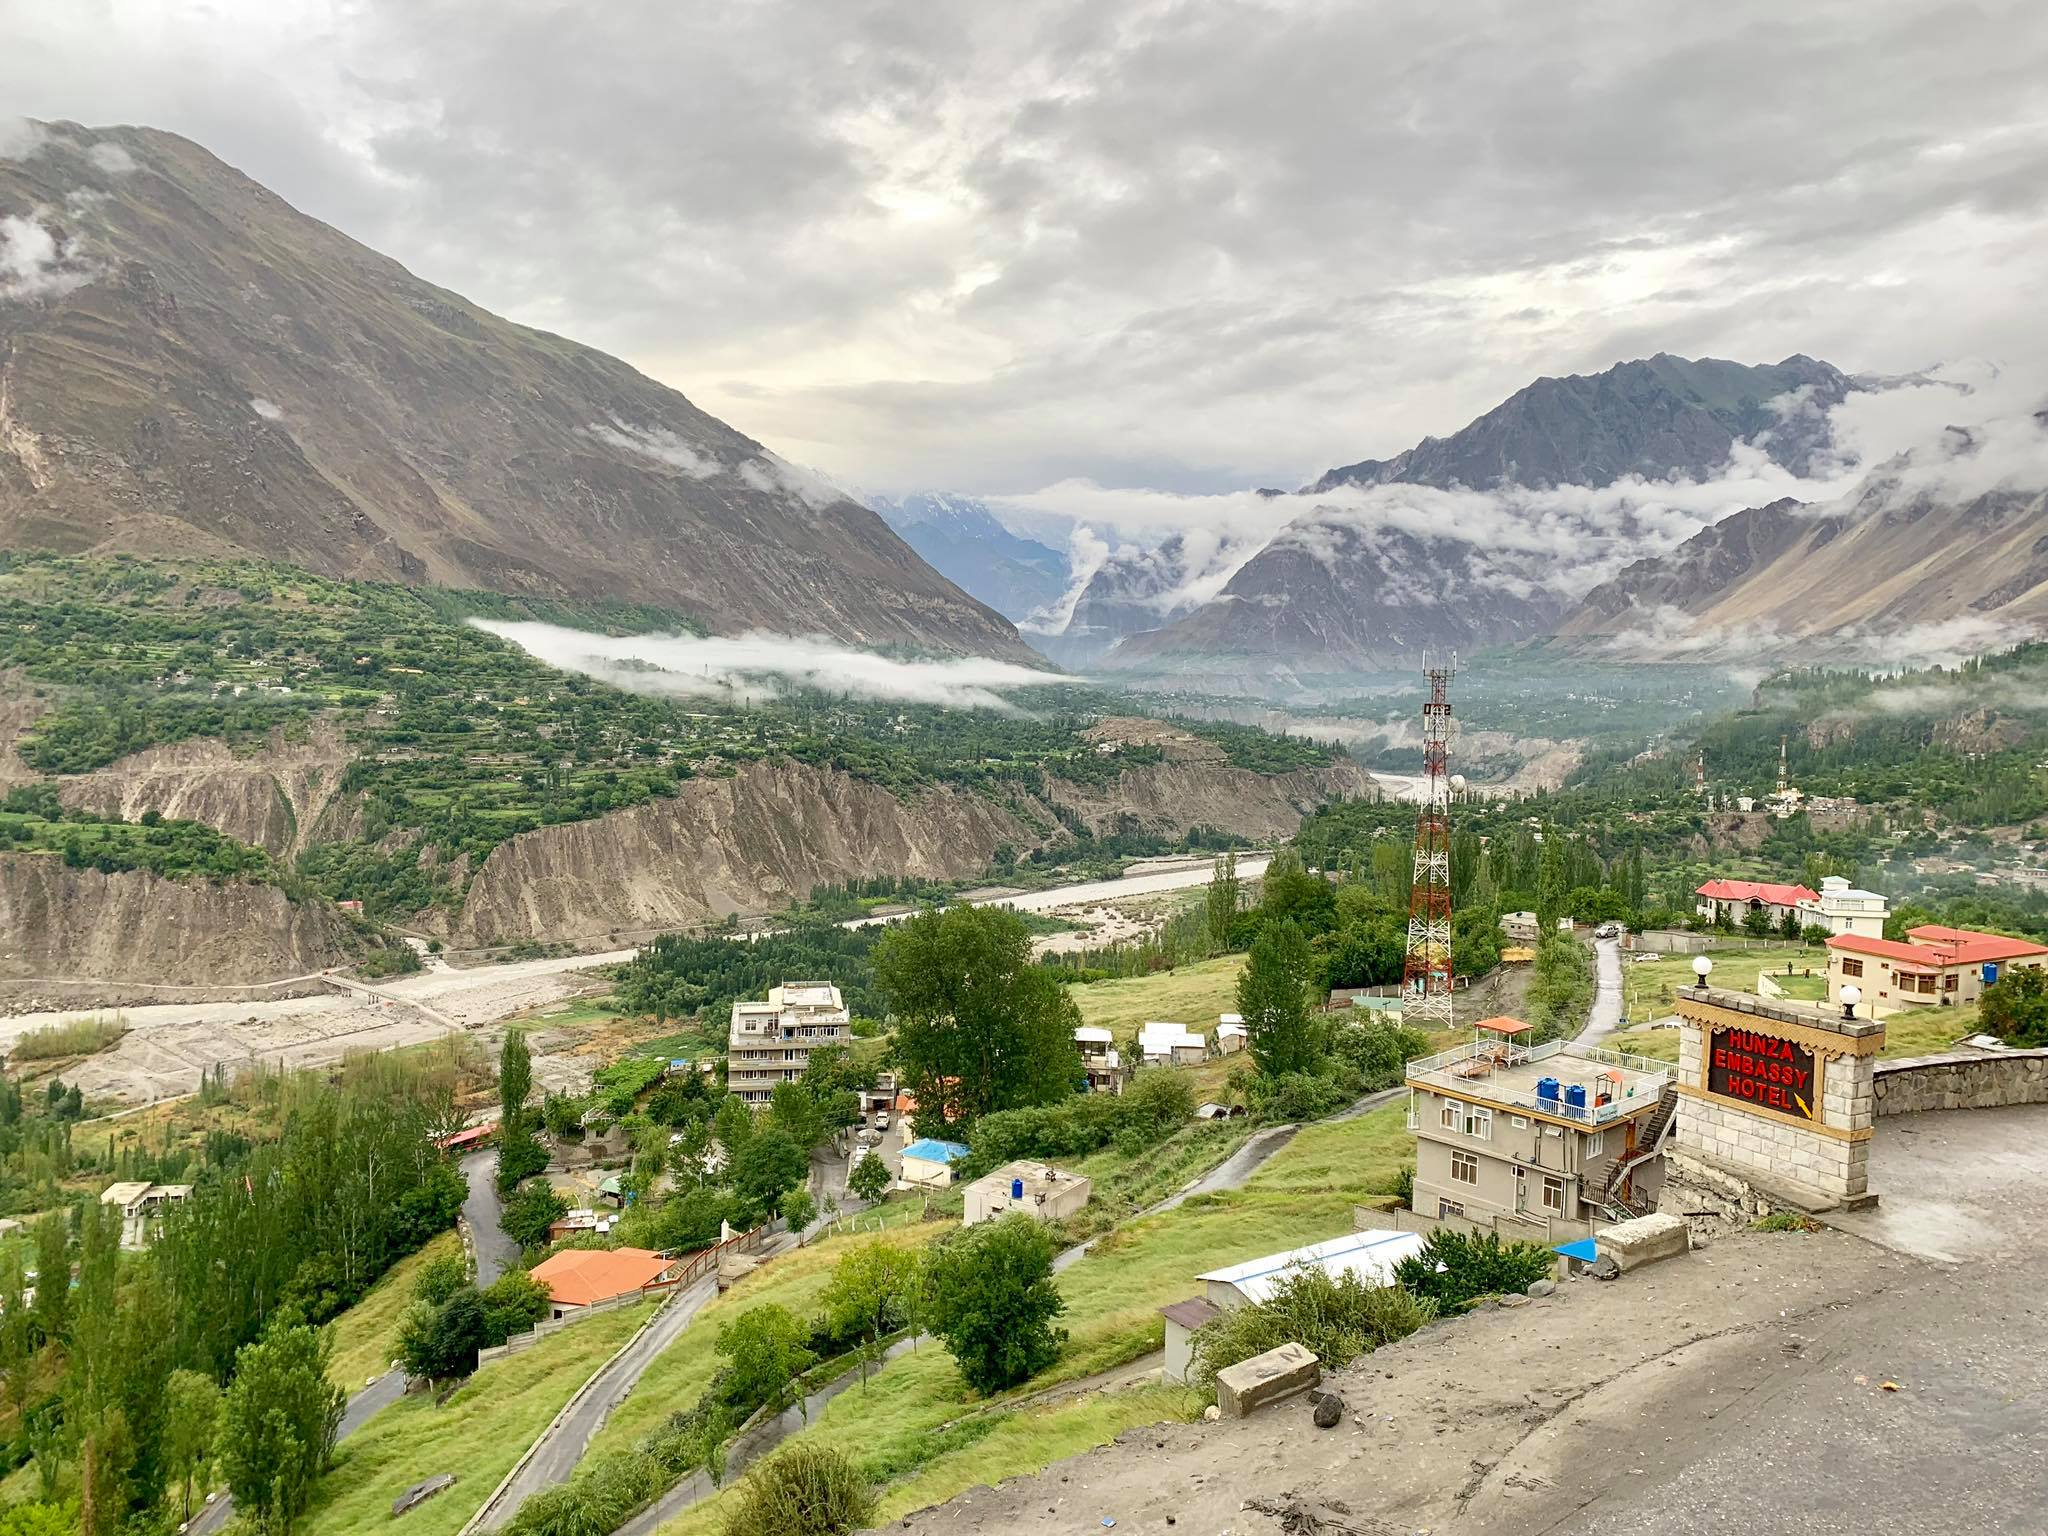 Kach Solo Travels in 2019 Driving in North Hunza Valley to Khunjerab Pass14.jpg